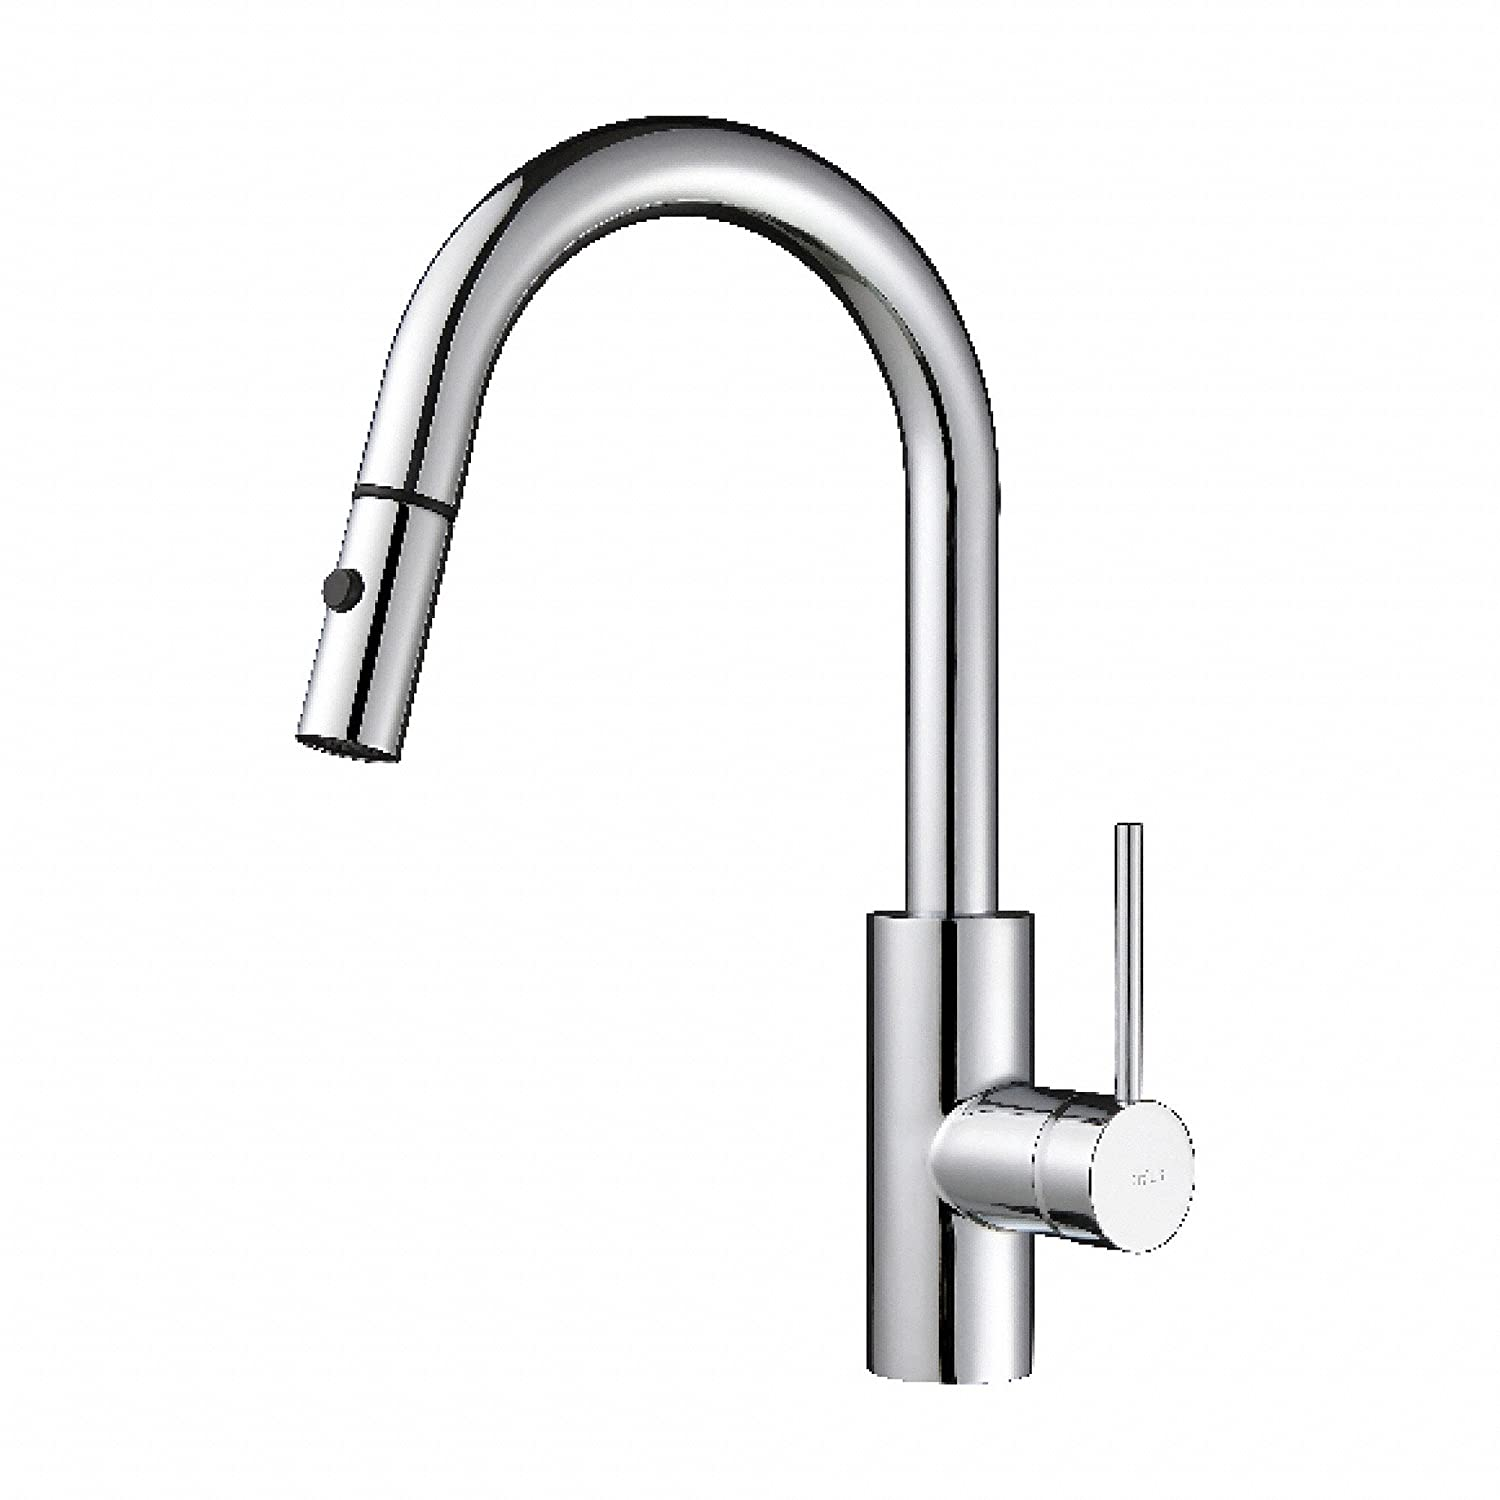 kraus kpf 2620ch modern oletto single lever pull down kitchen kraus kpf 2620ch modern oletto single lever pull down kitchen faucet chrome amazon com